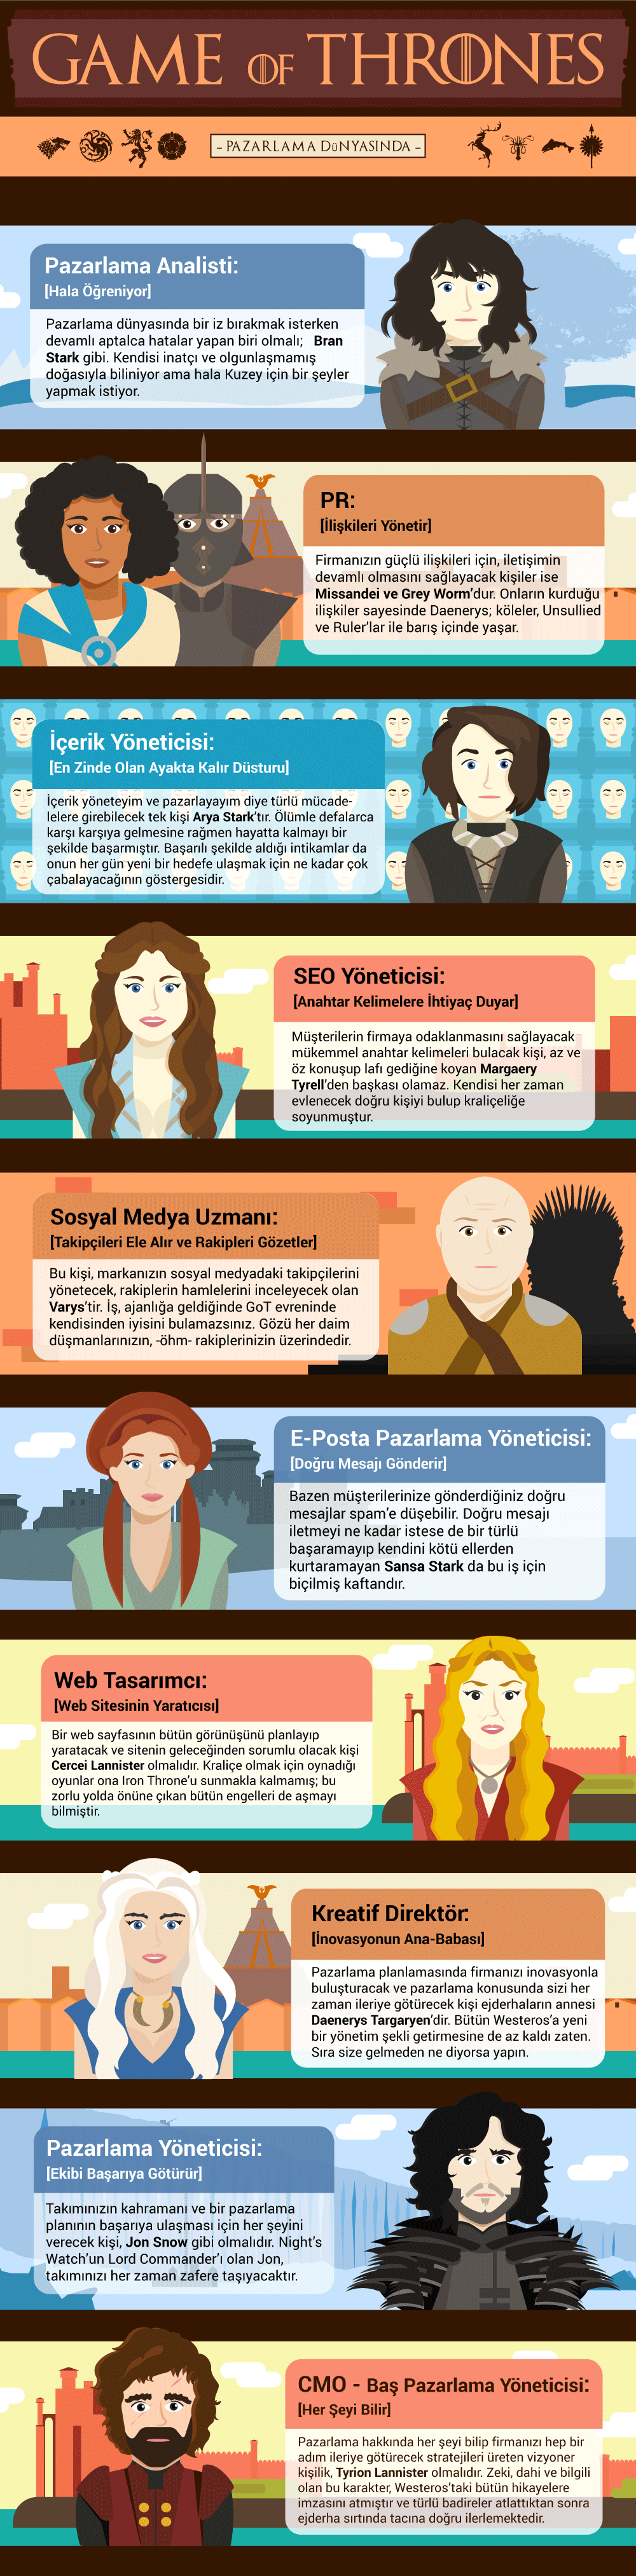 game of thrones karakterleri ajans pazarlama